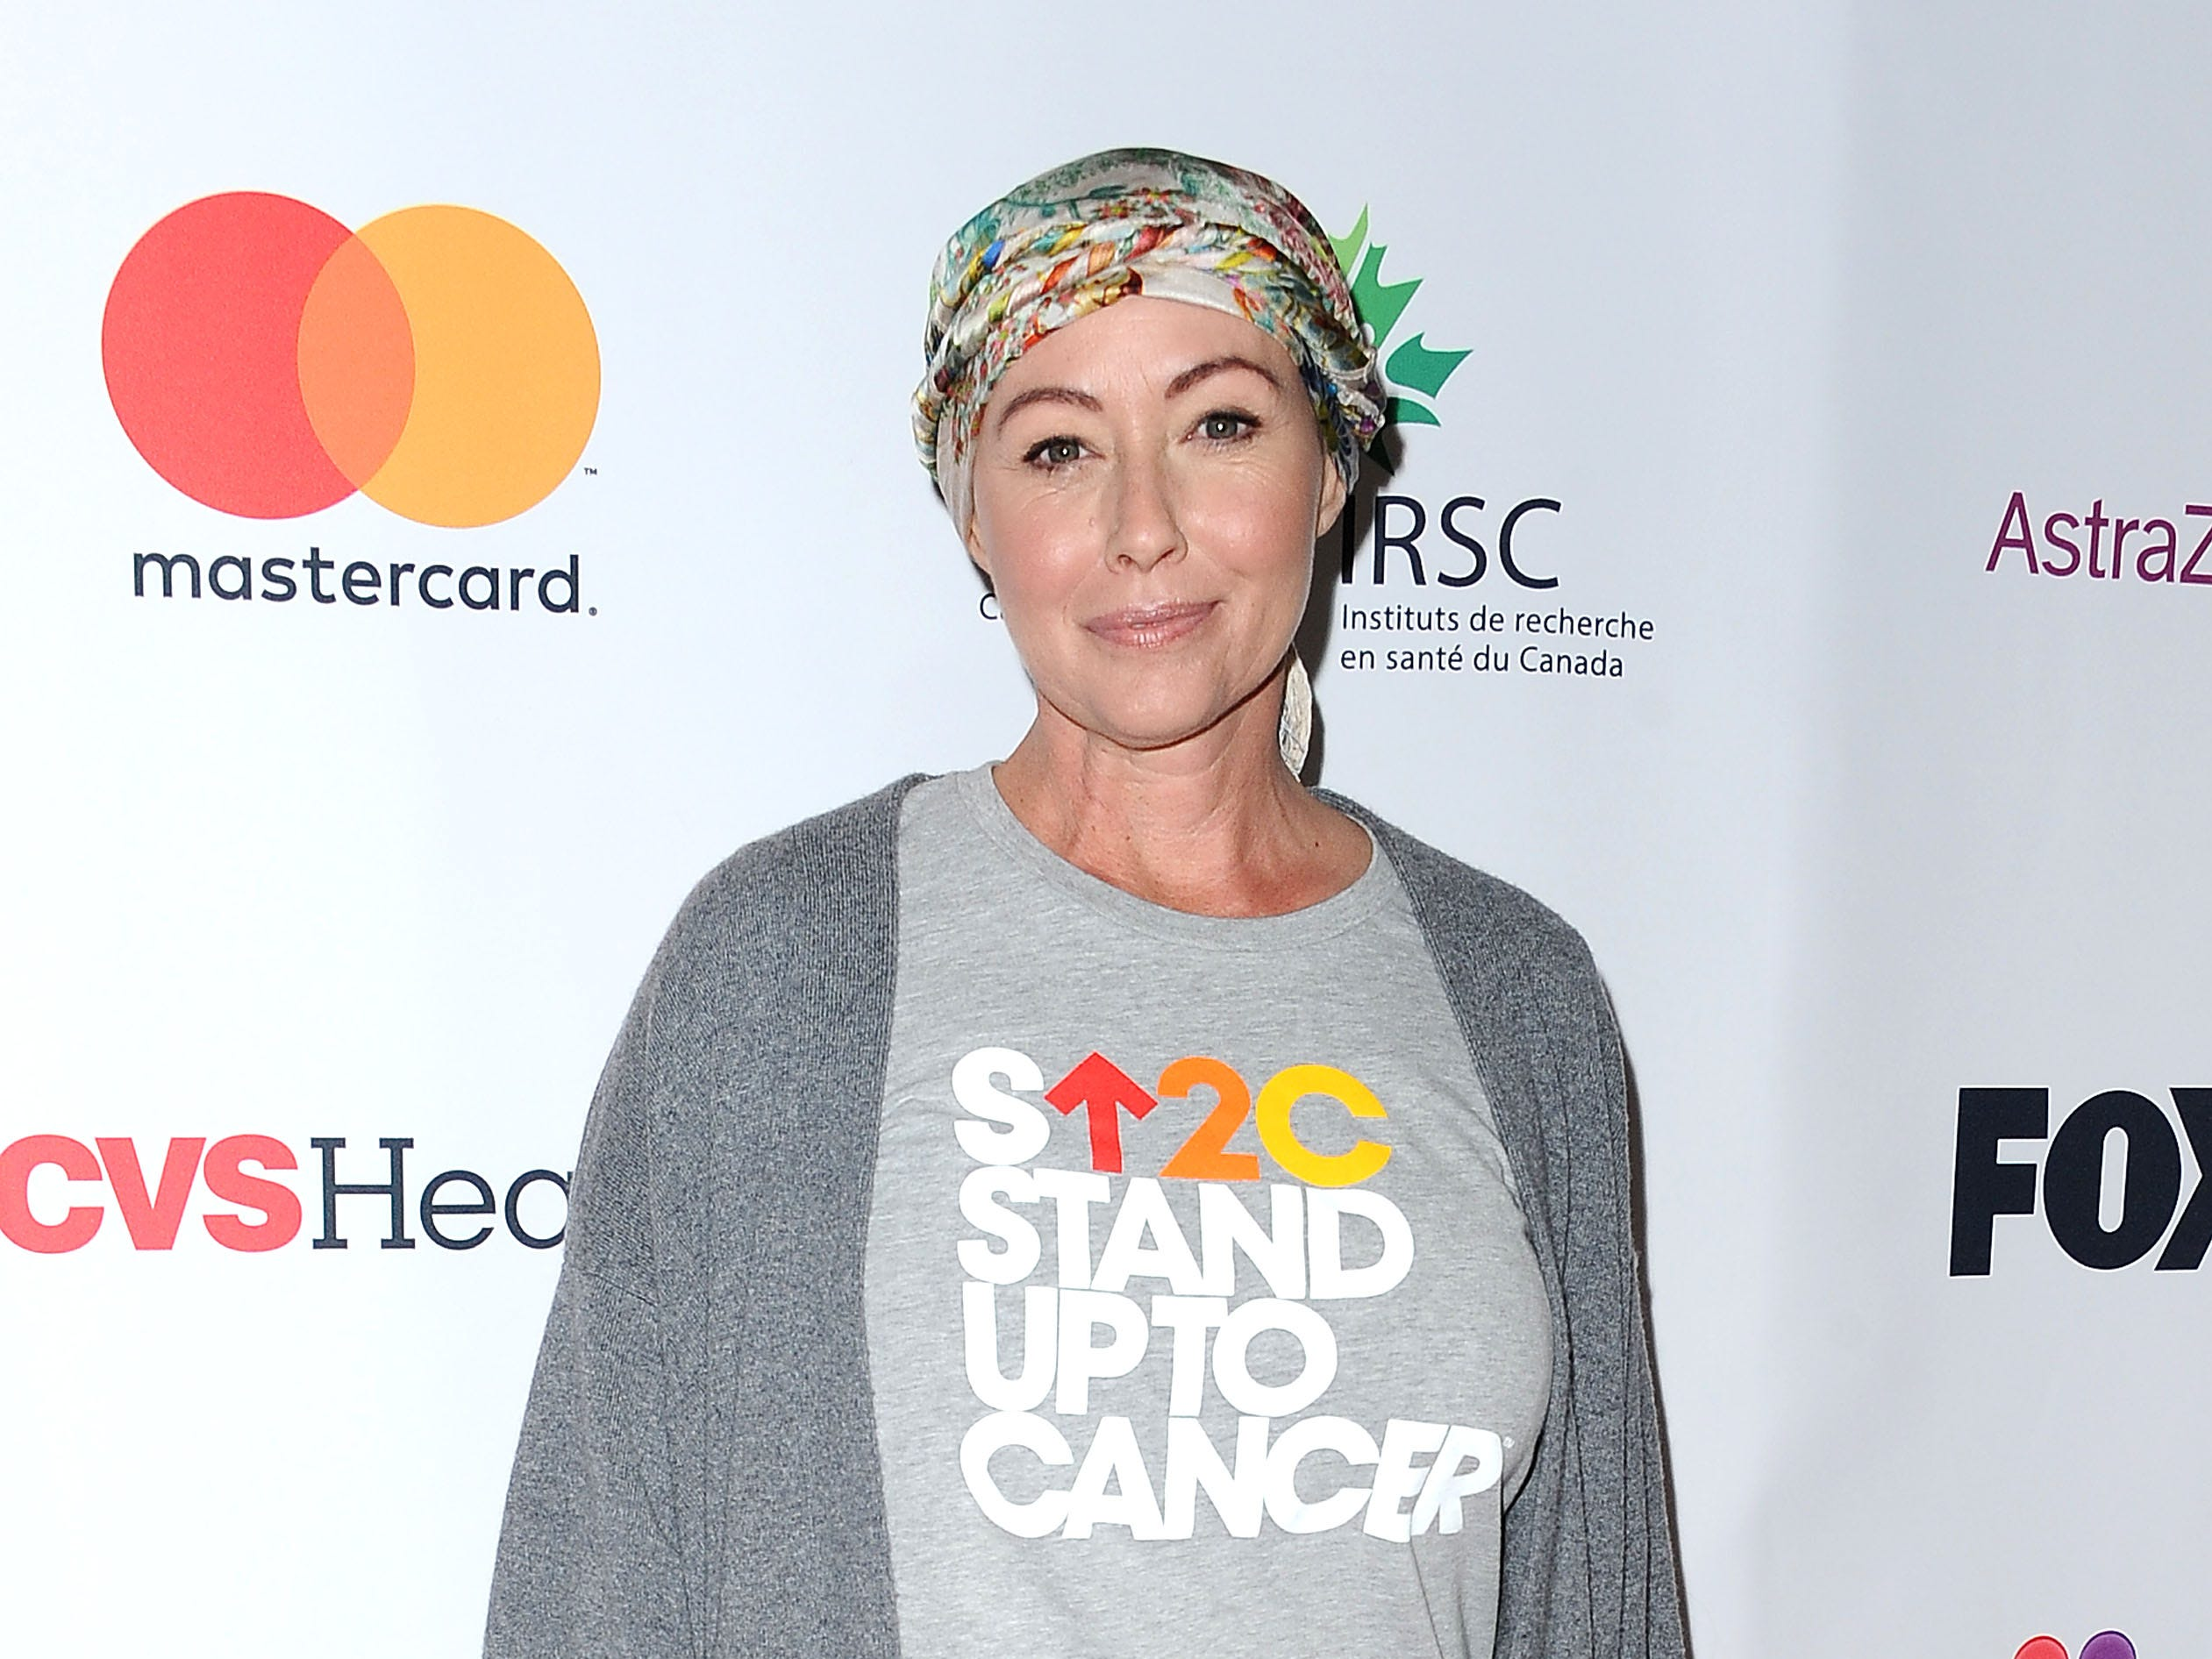 In 2016, Doherty found her way back into the headlines by documenting her breast-cancer diagnosis and treatment through her Instagram account. In 2017, she revealed that her cancer was in remission.